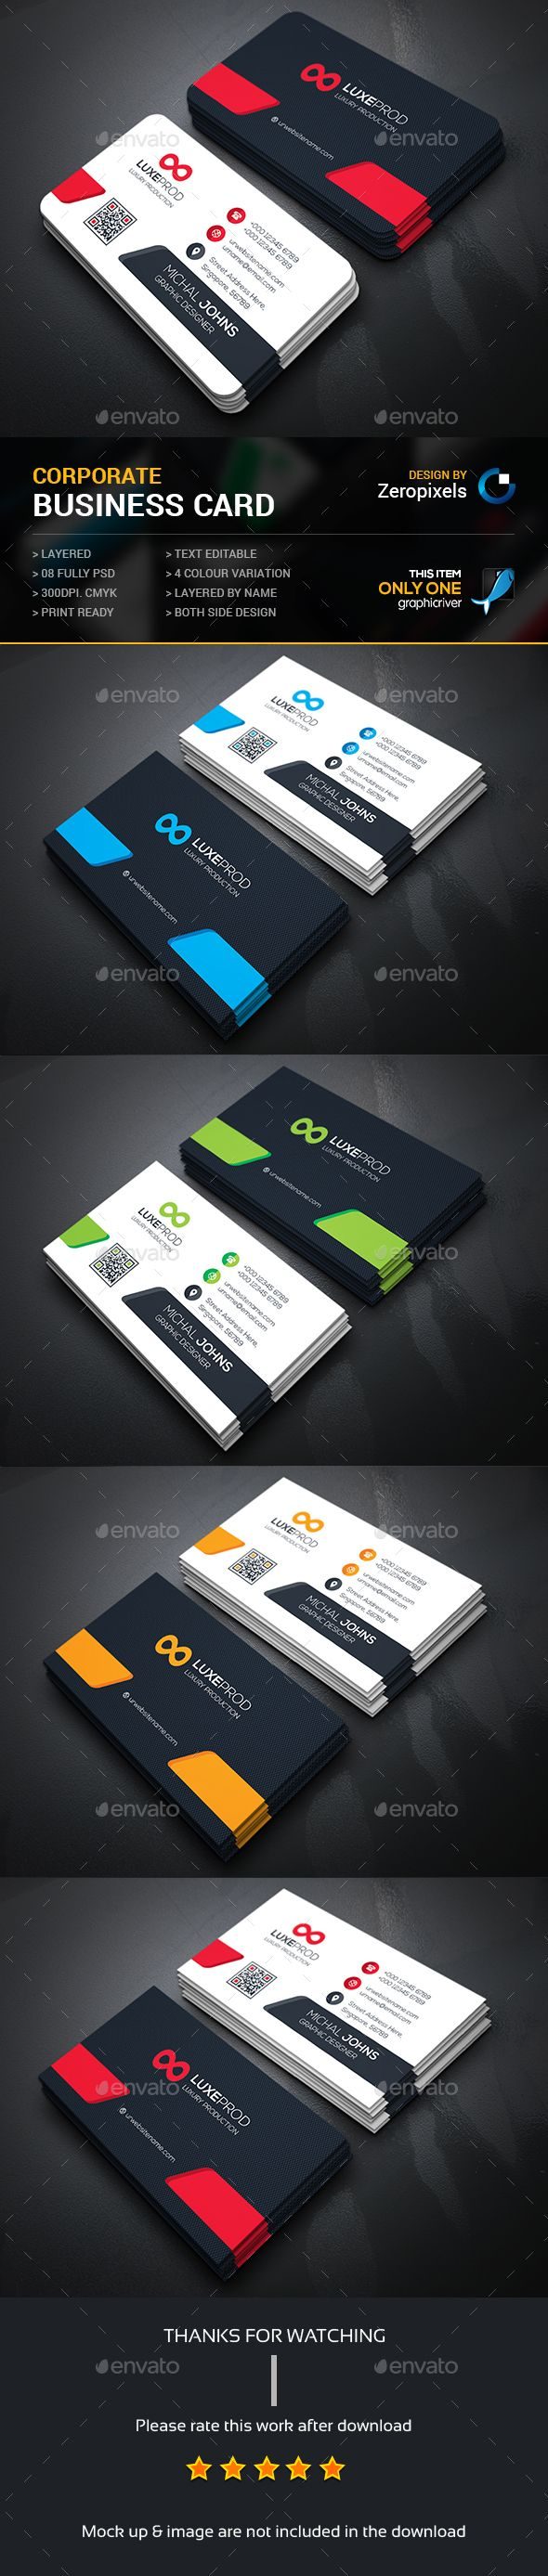 Creative Business Card — Photoshop PSD #green #white • Available here → https://graphicriver.net/item/creative-business-card/15223974?ref=pxcr